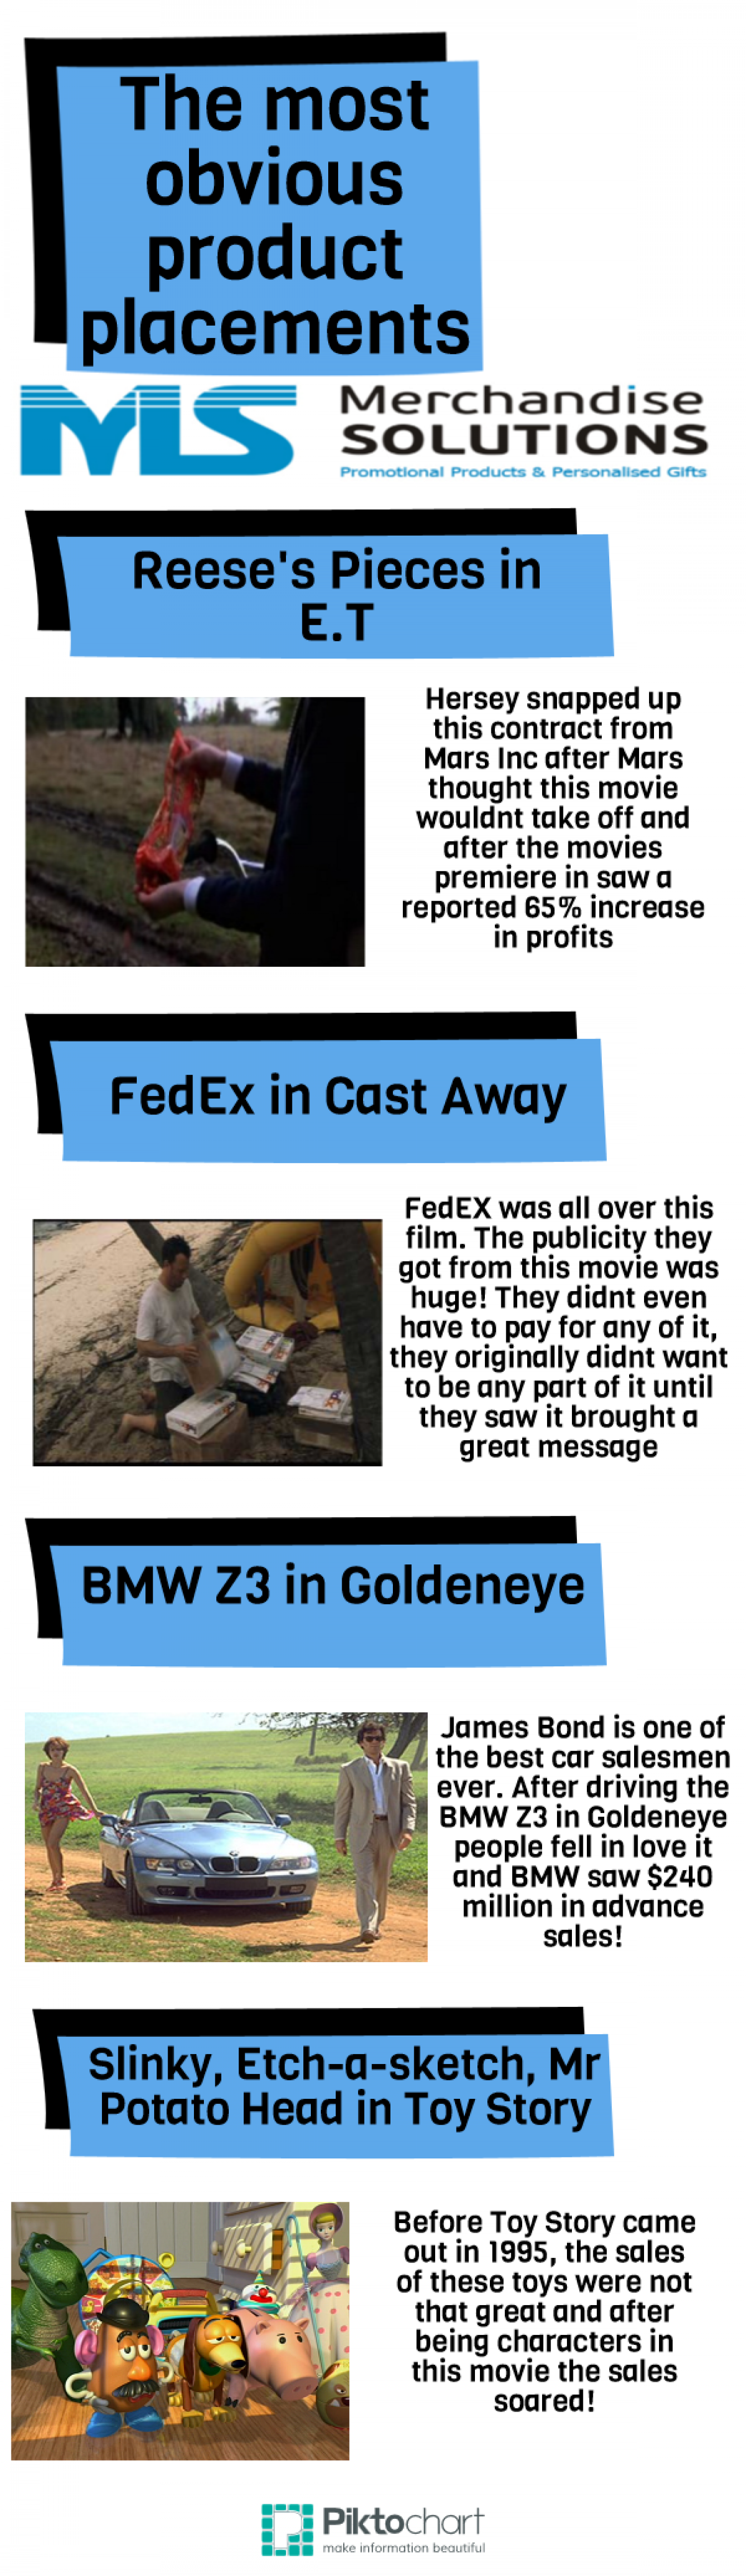 The most obvious product placement Infographic